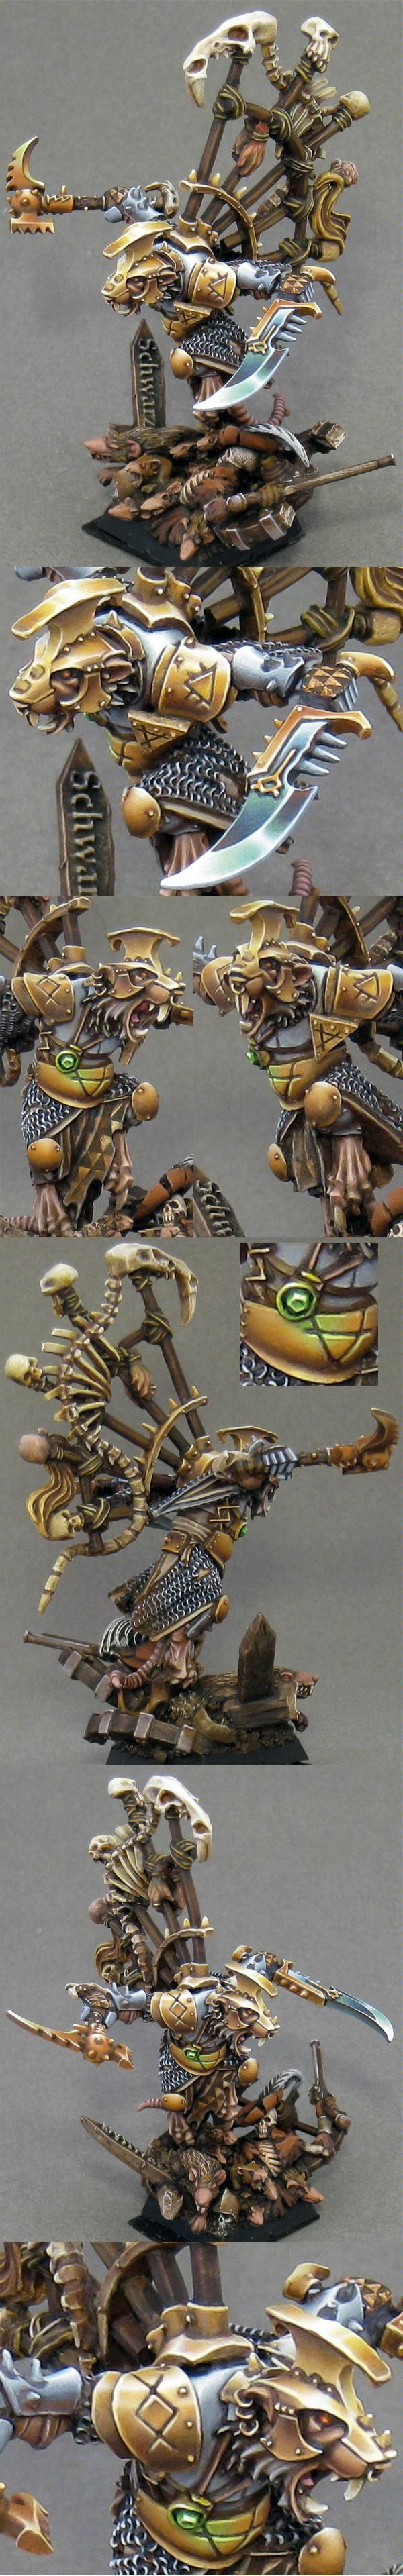 Awesome, Non-Metallic Metal, Queek, Skaven, Warhammer Fantasy, Warlord